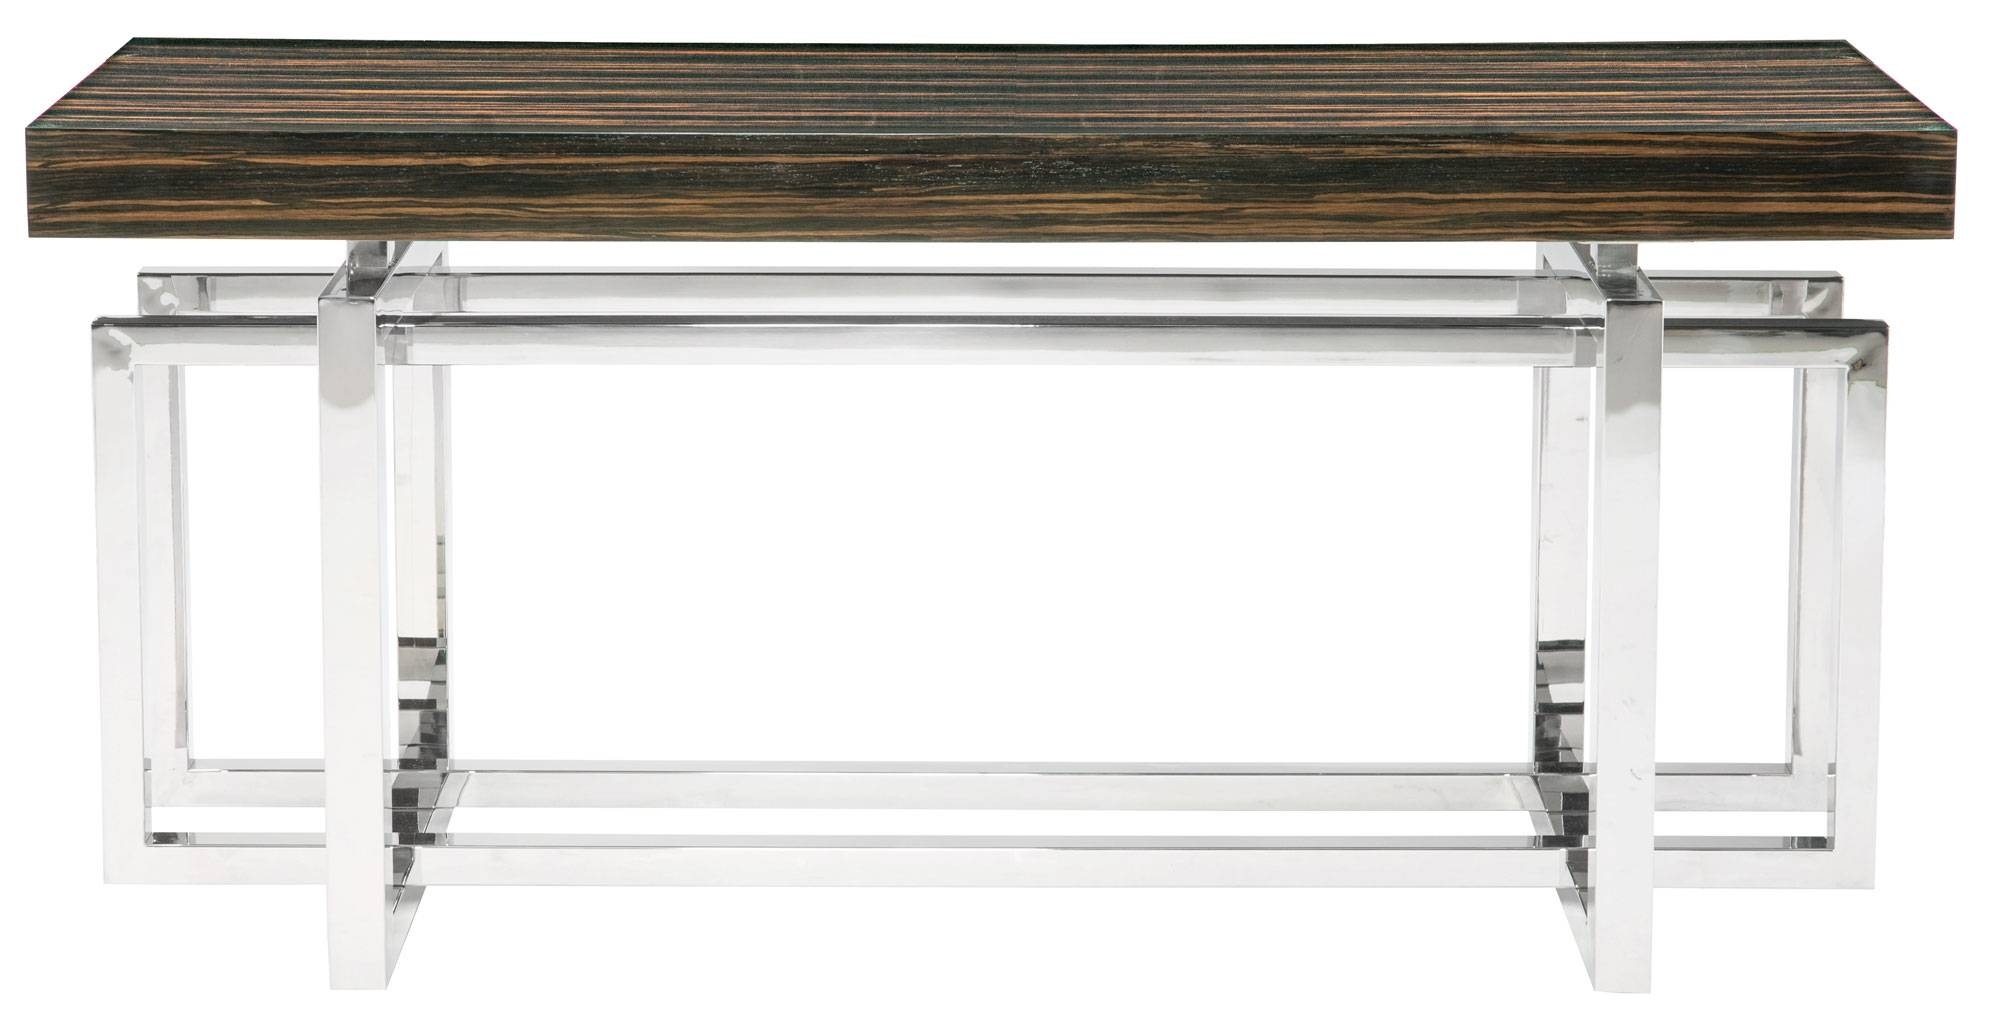 Console Table Wood Top And Metal Base | Bernhardt pertaining to Bernhardt Console Tables (Image 3 of 15)